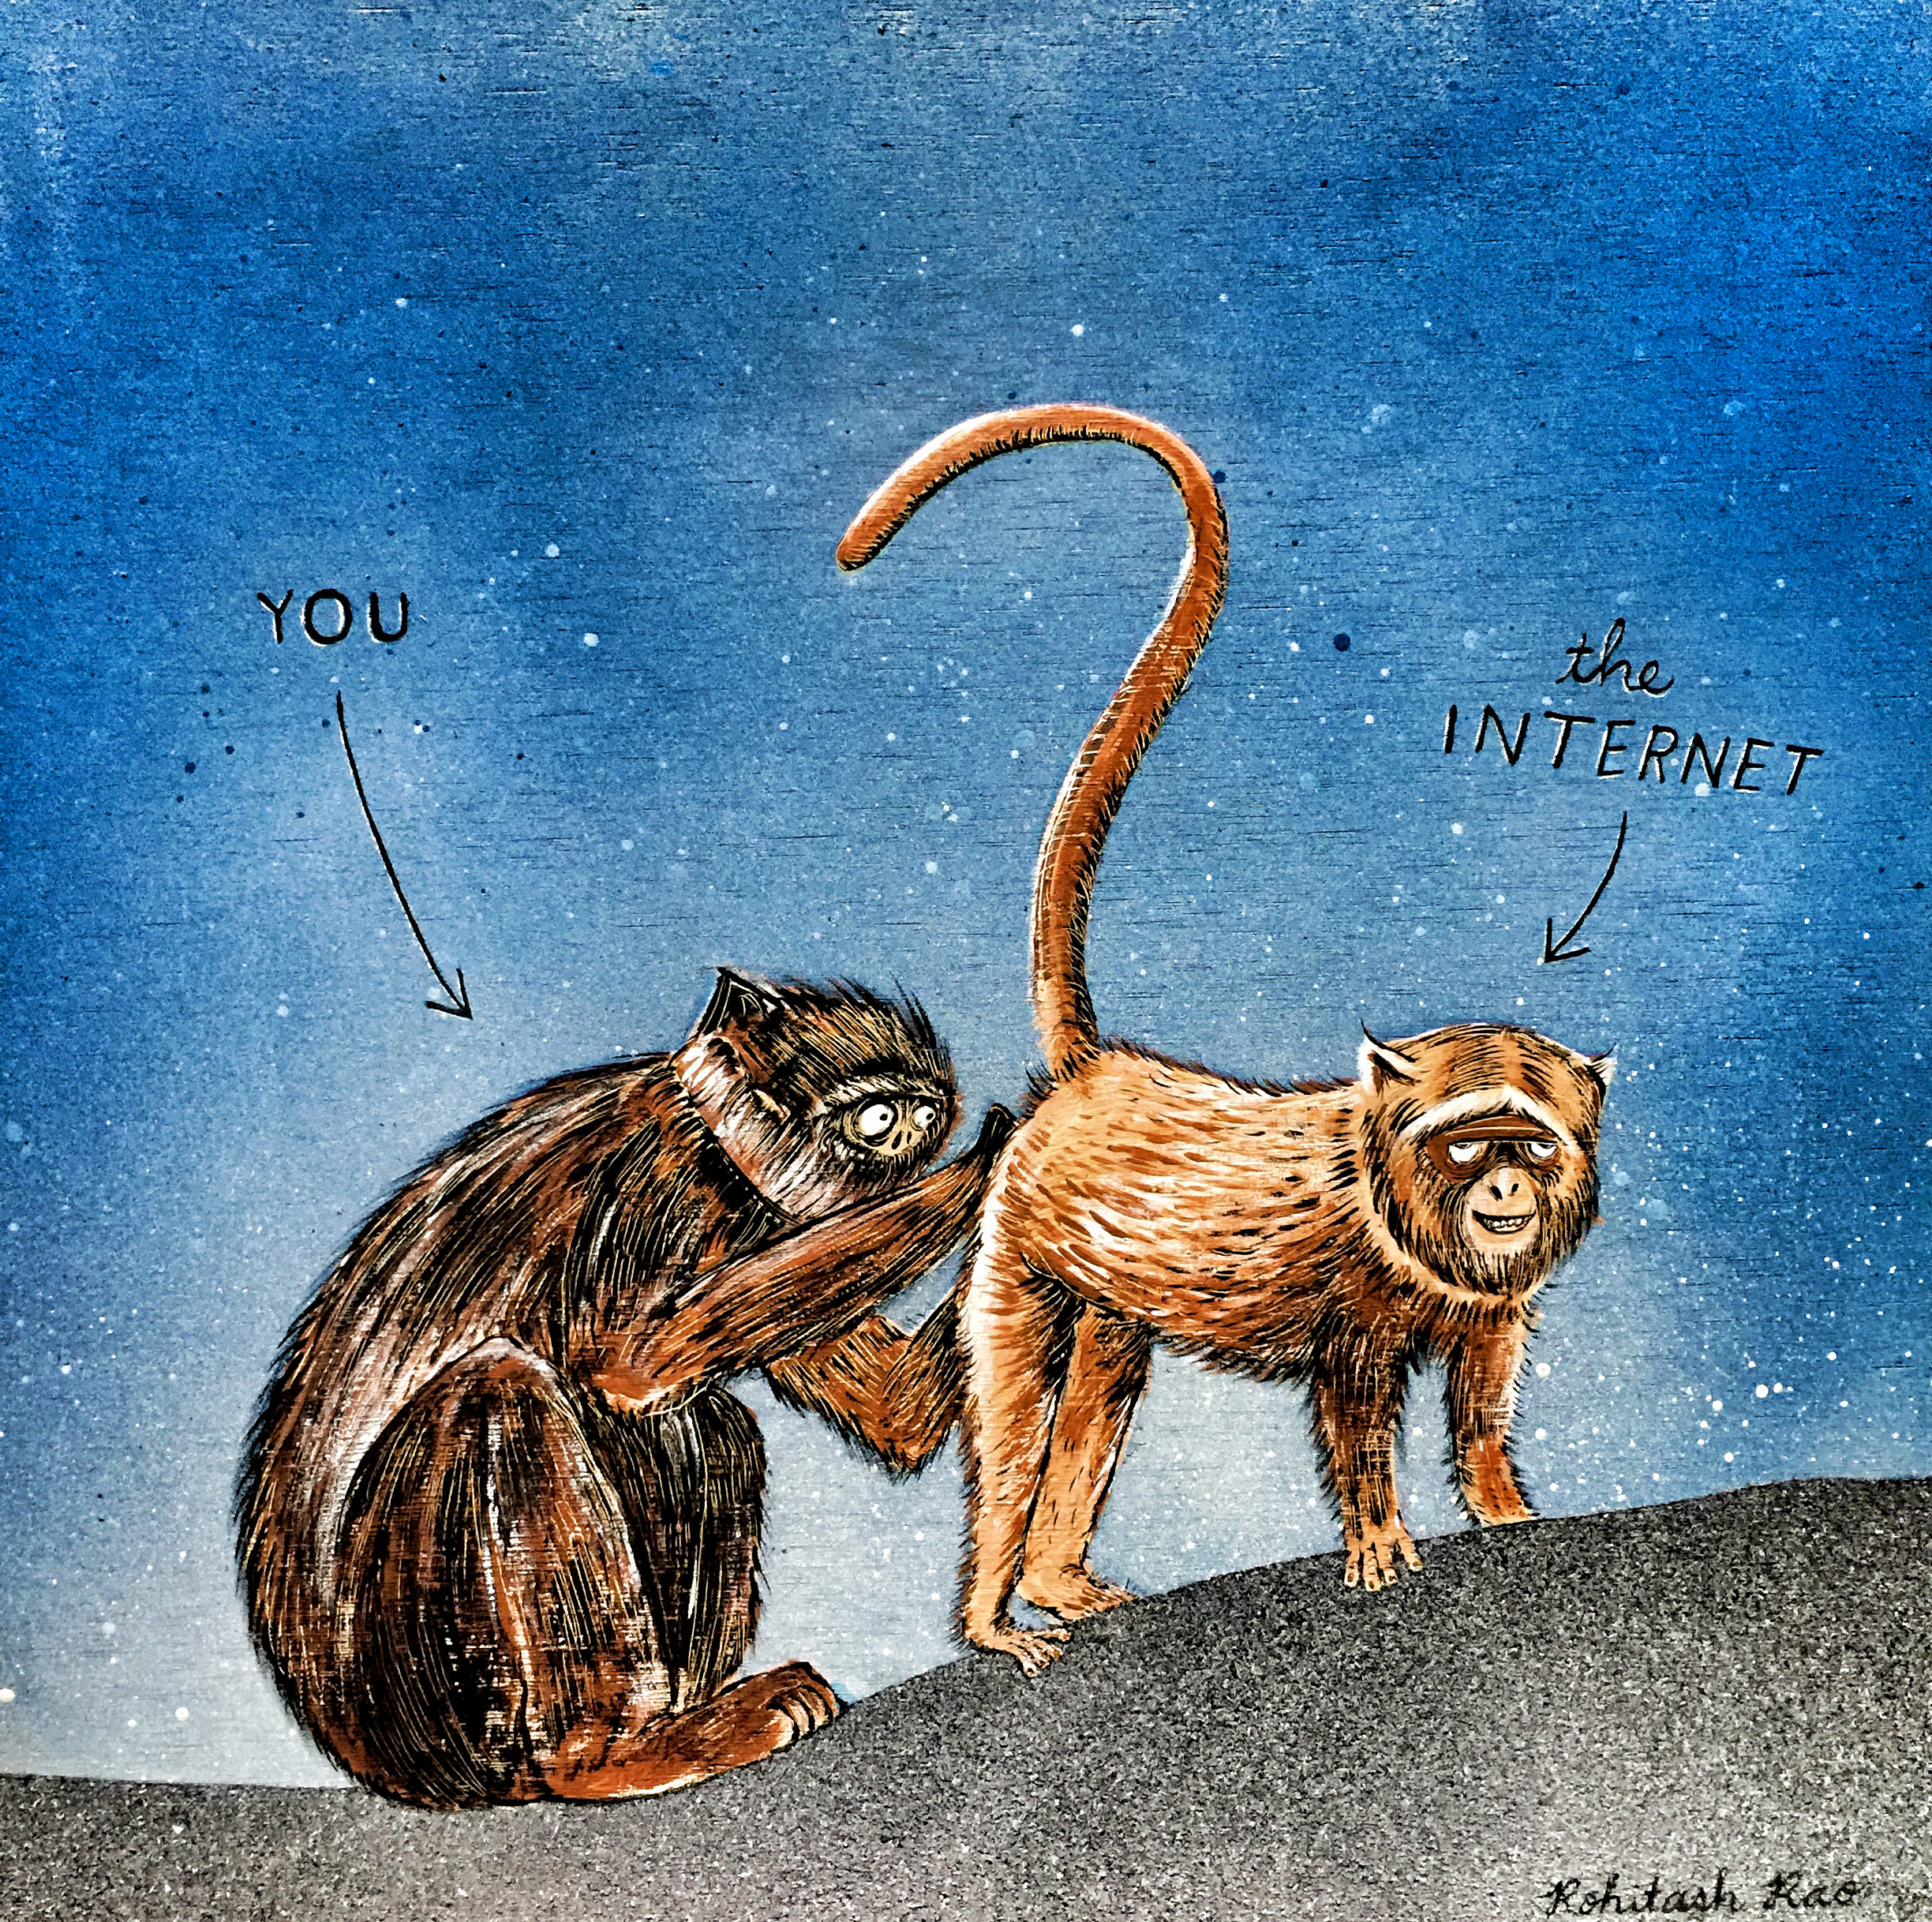 YOU AND THE INTERNET